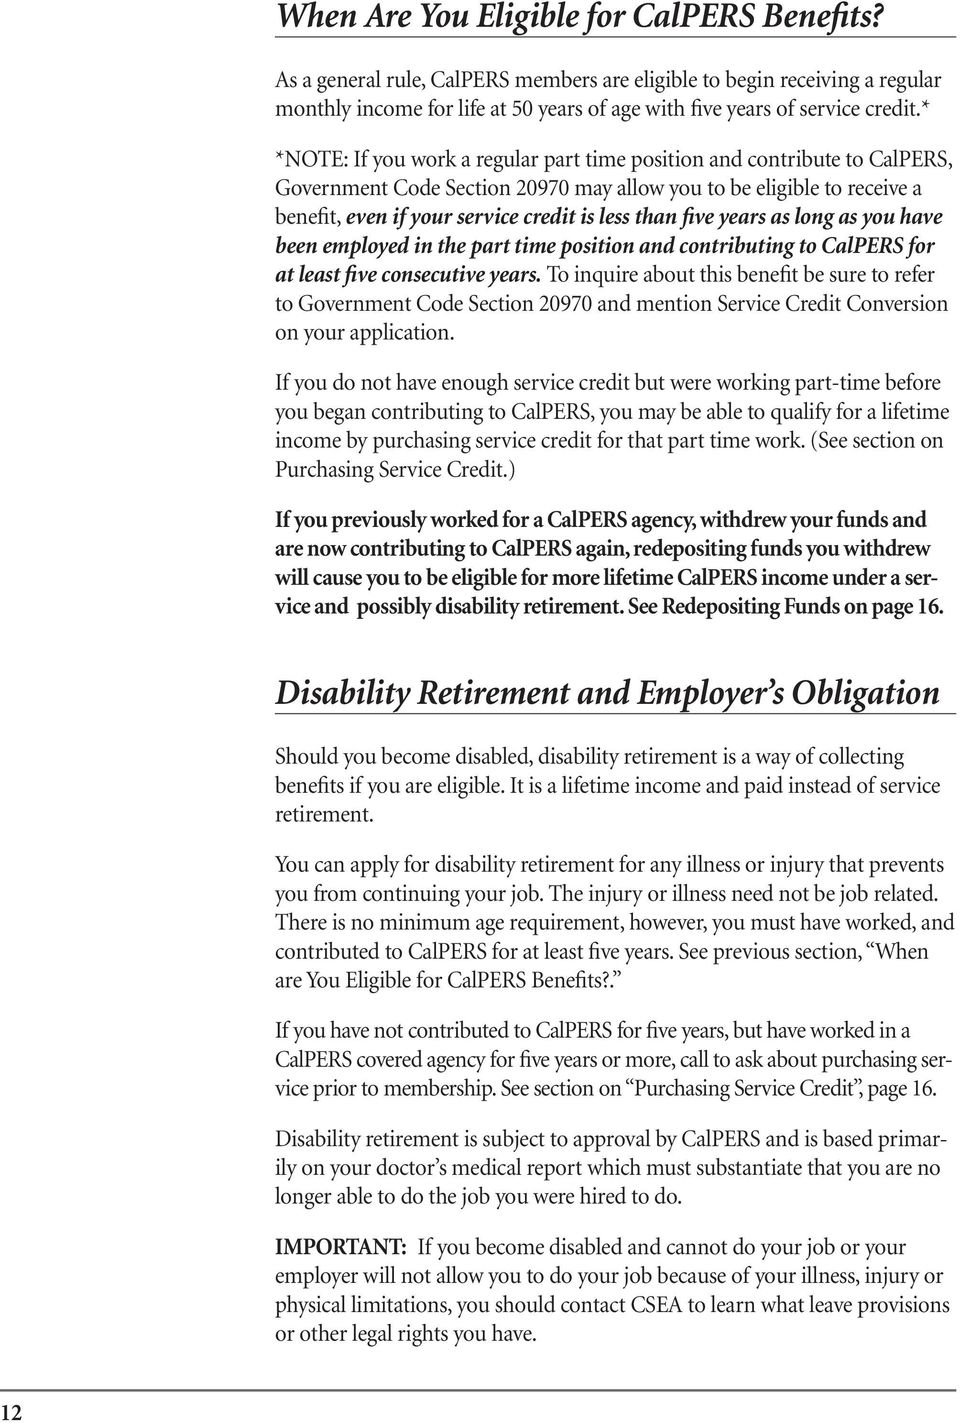 five years as long as you have been employed in the part time position and contributing to CalPERS for at least five consecutive years.